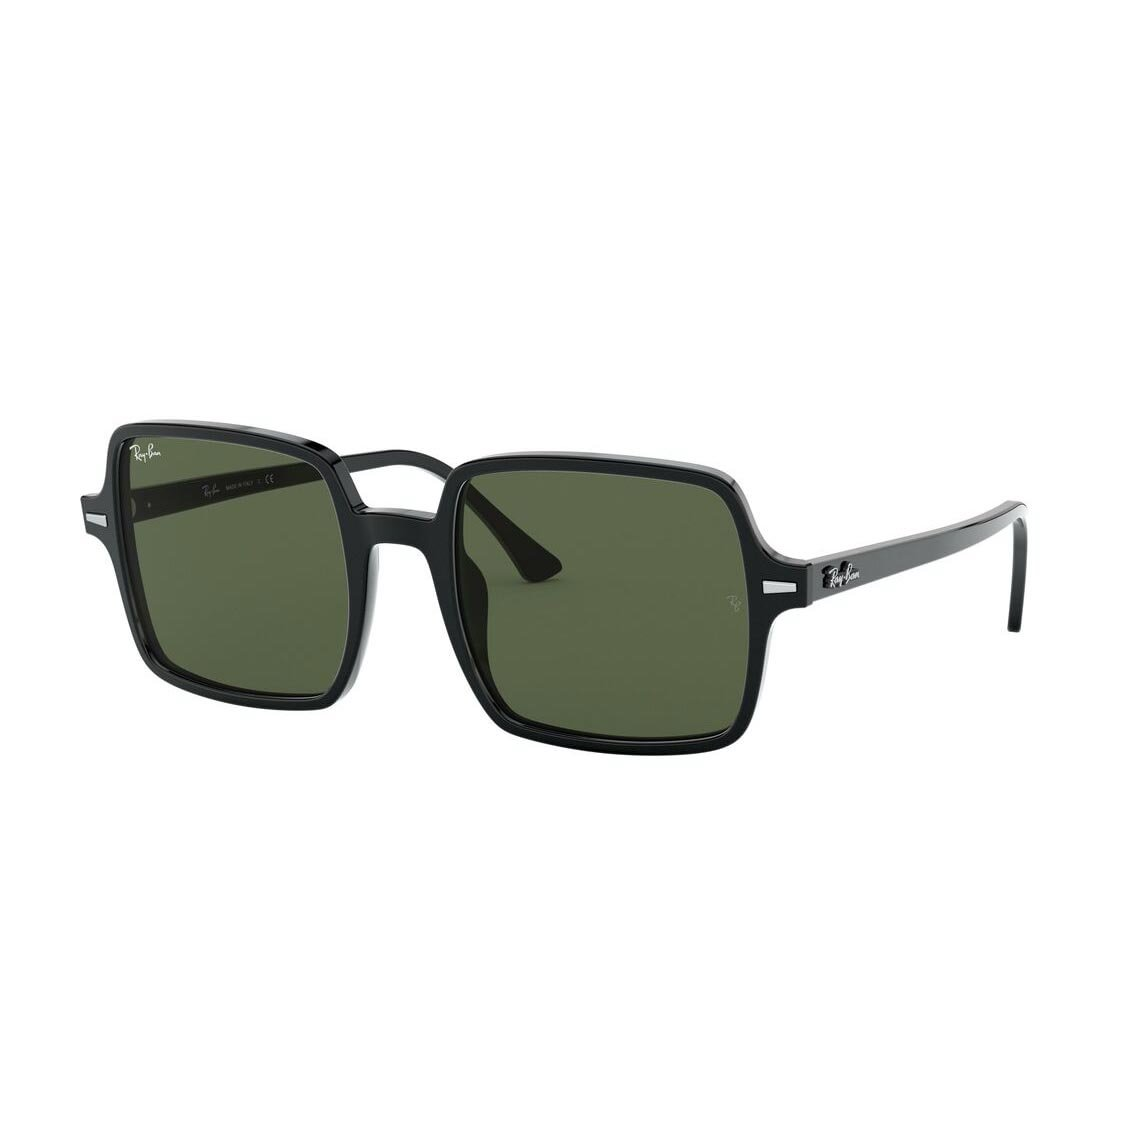 Ray-Ban Square II RB1973 901/31 5320